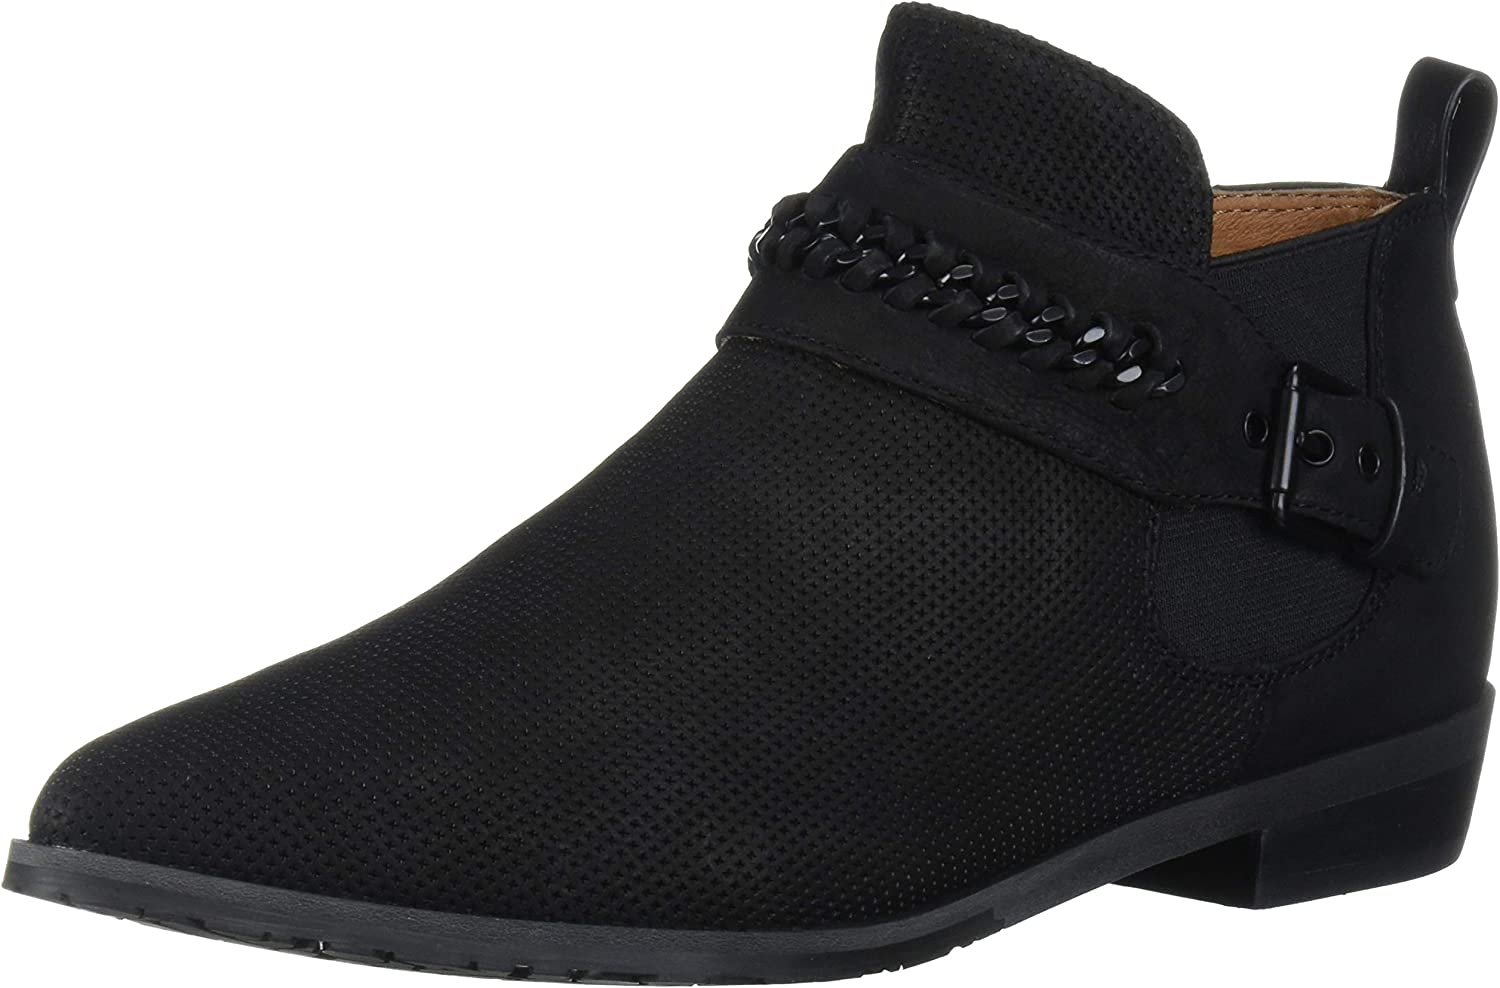 Gentle Souls by Kenneth Cole Women's Neptune Chain Bootie 2 Ankle Boot